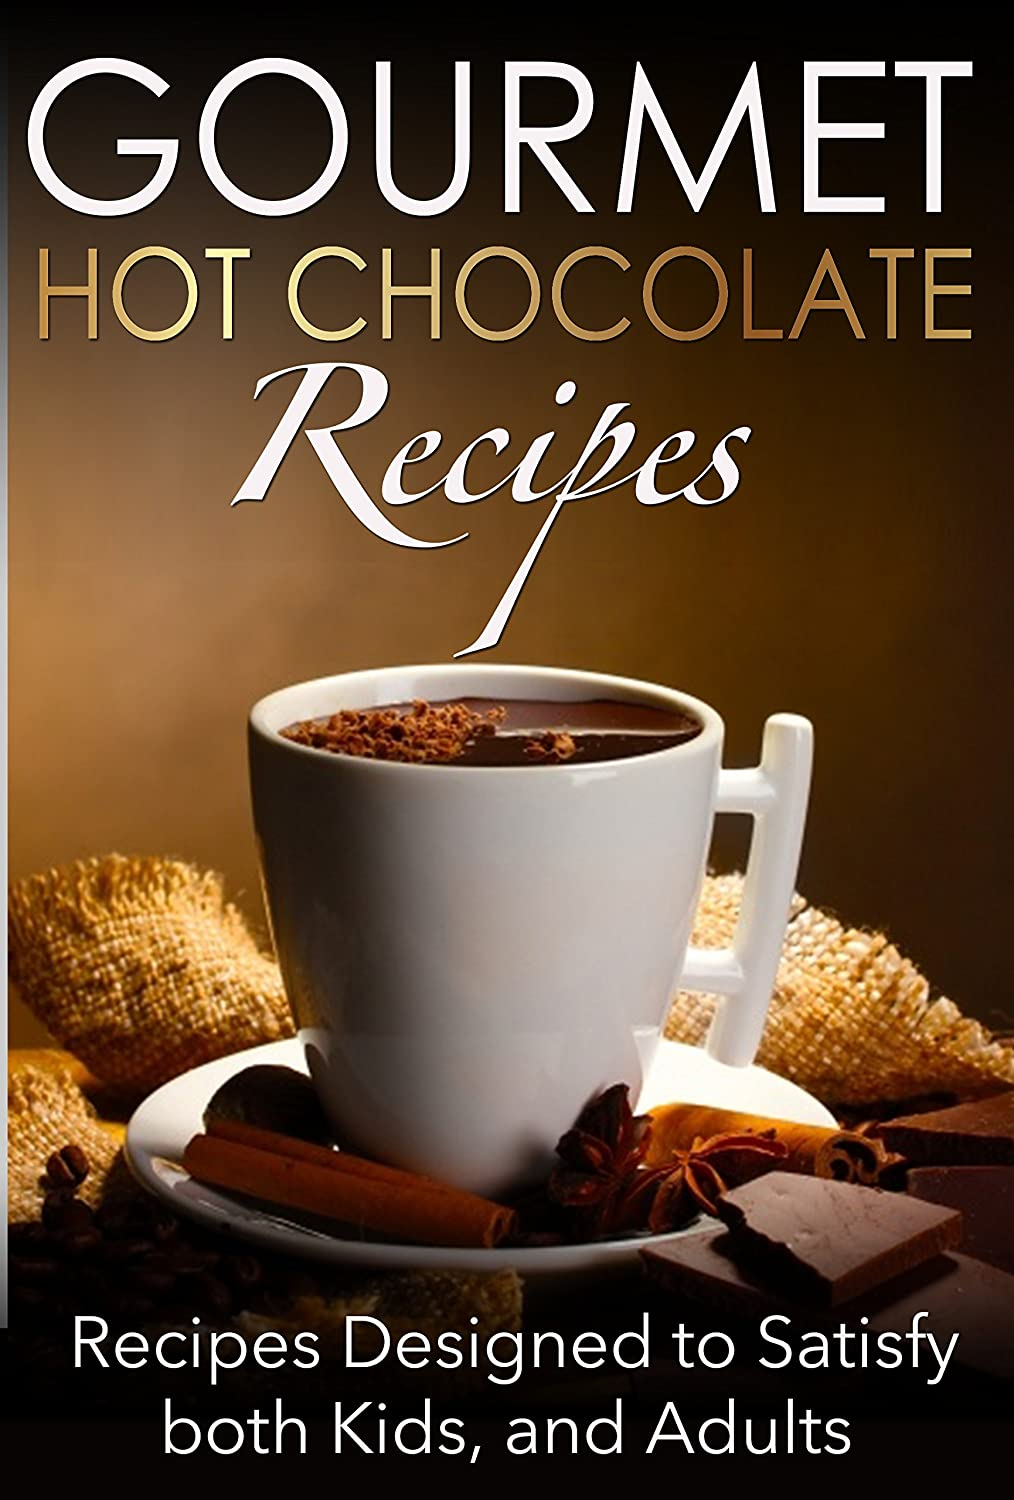 http://www.amazon.com/Gourmet-Hot-Chocolate-Recipes-Designed-ebook/dp/B00QHODANC/ref=as_sl_pc_ss_til?tag=lettfromahome-20&linkCode=w01&linkId=YRP67H7ZOTDMKOKV&creativeASIN=B00QHODANC